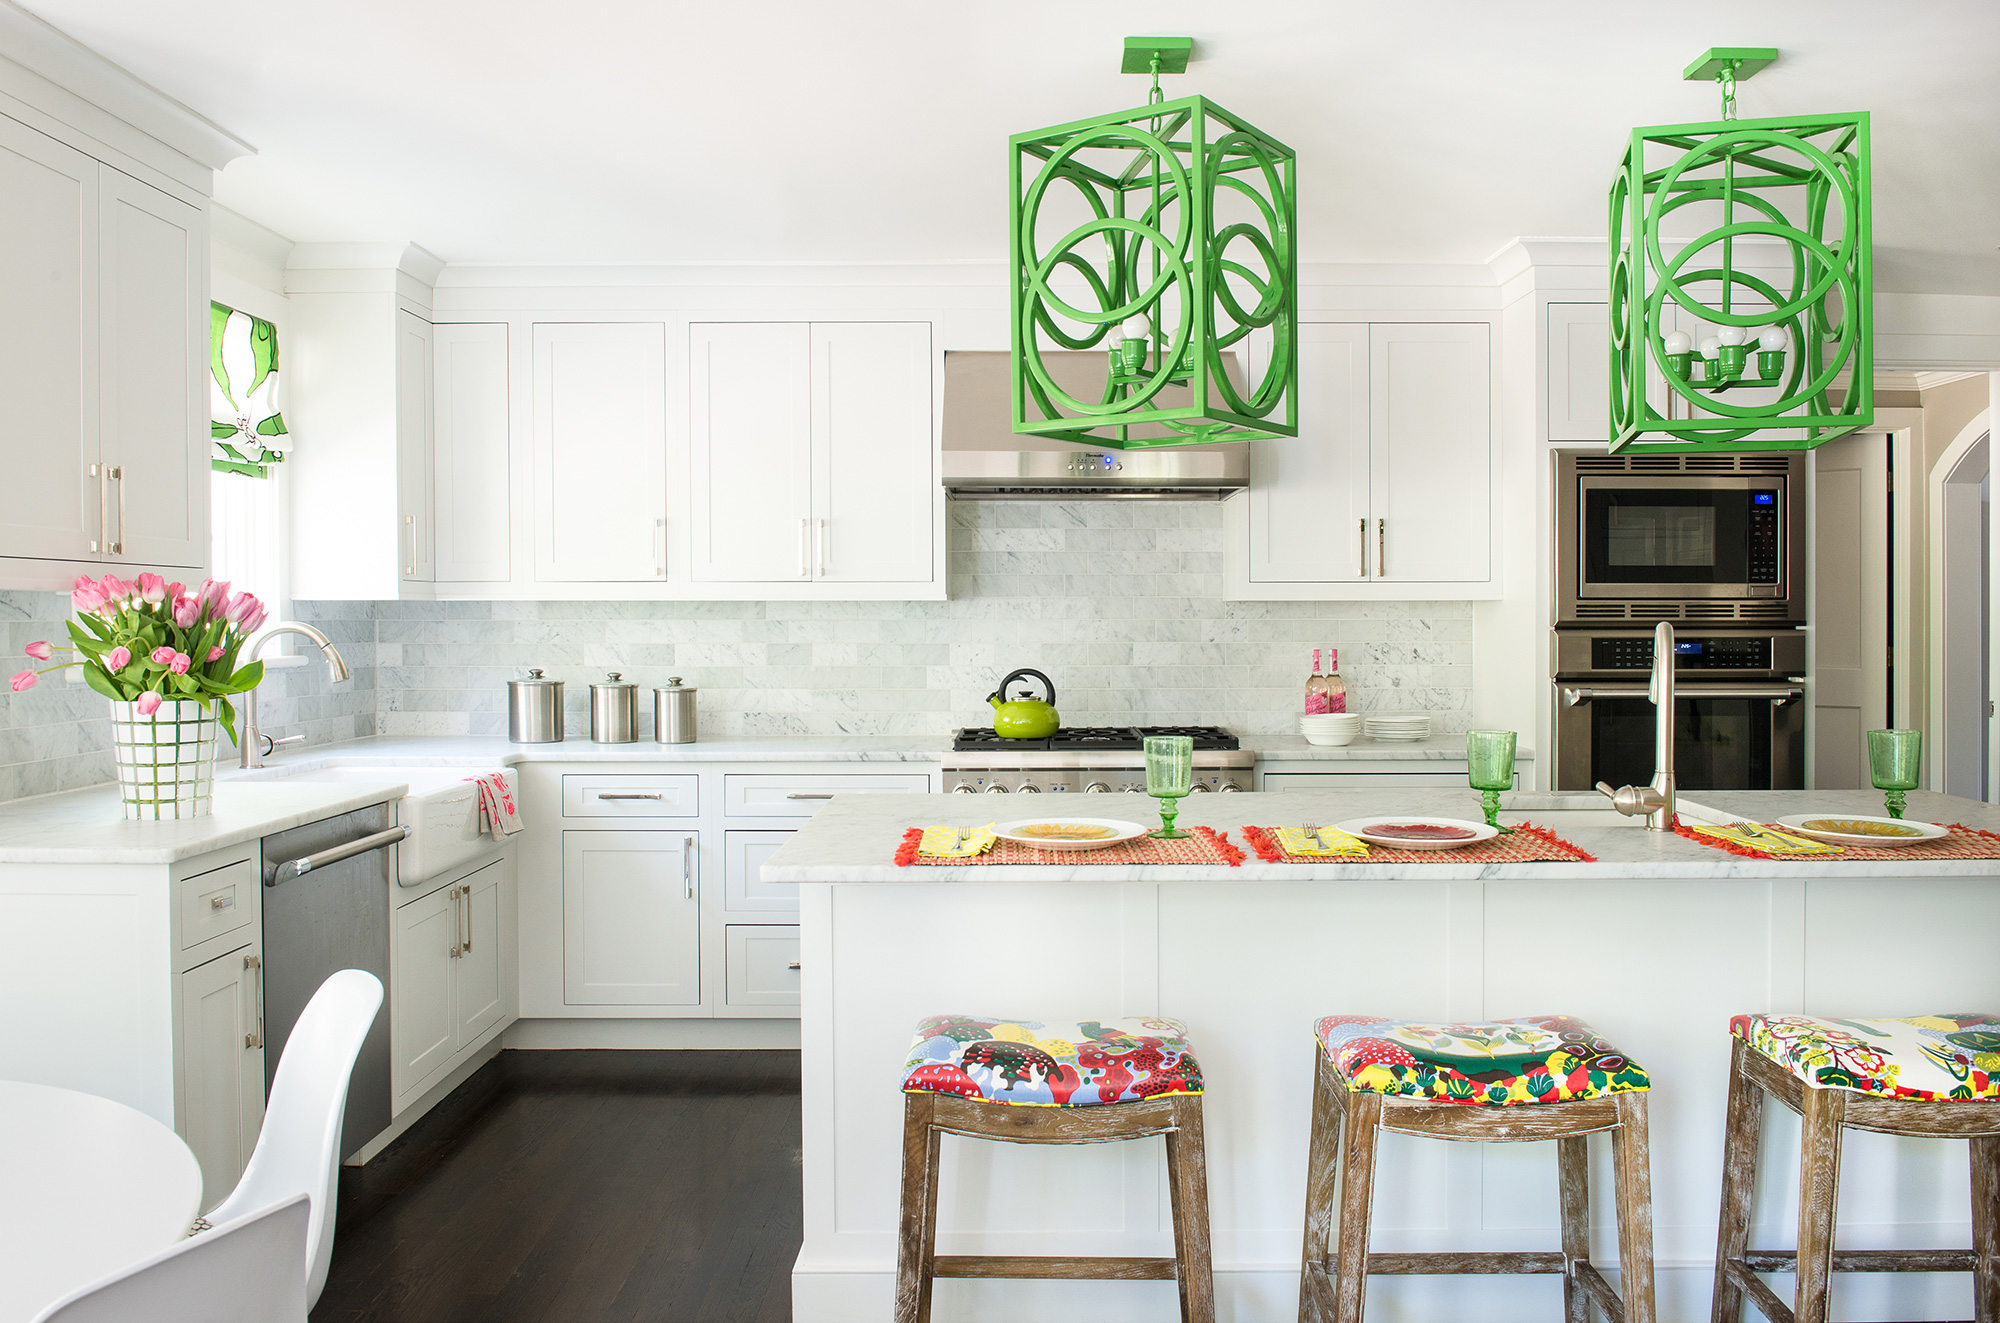 kelly green pendant lights from Shine by S.H.O